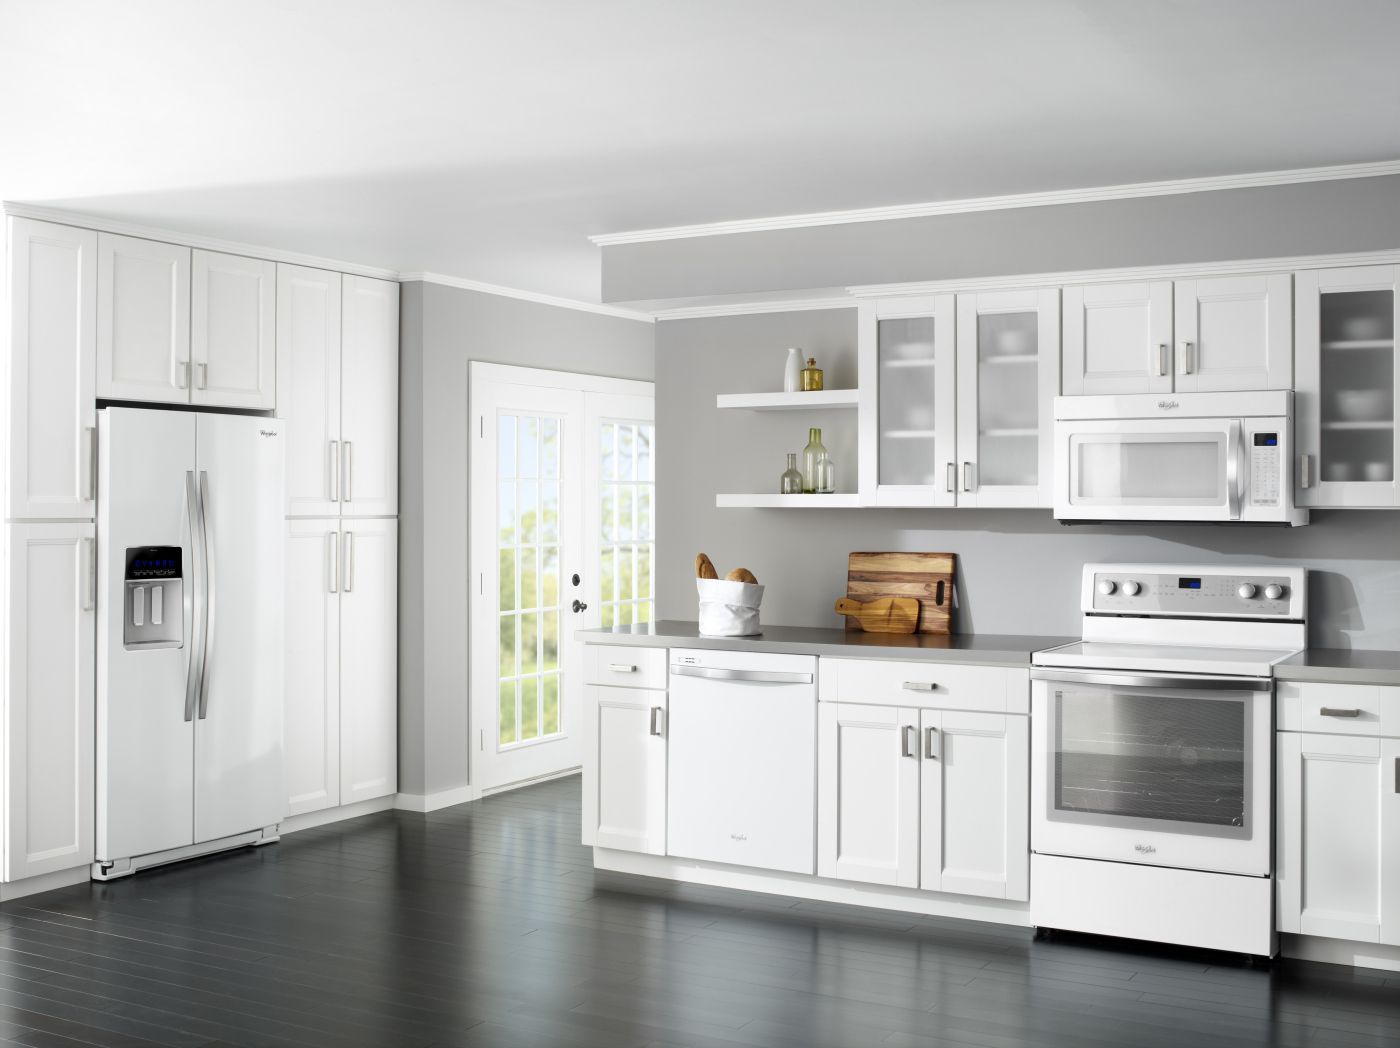 Whirlpool white ice products - White With Cool White Appliances We Love The All White Kitchen Trend This Is A Photo Of Whirlpool S White Ice Collection With White Kitchen Cabinetry